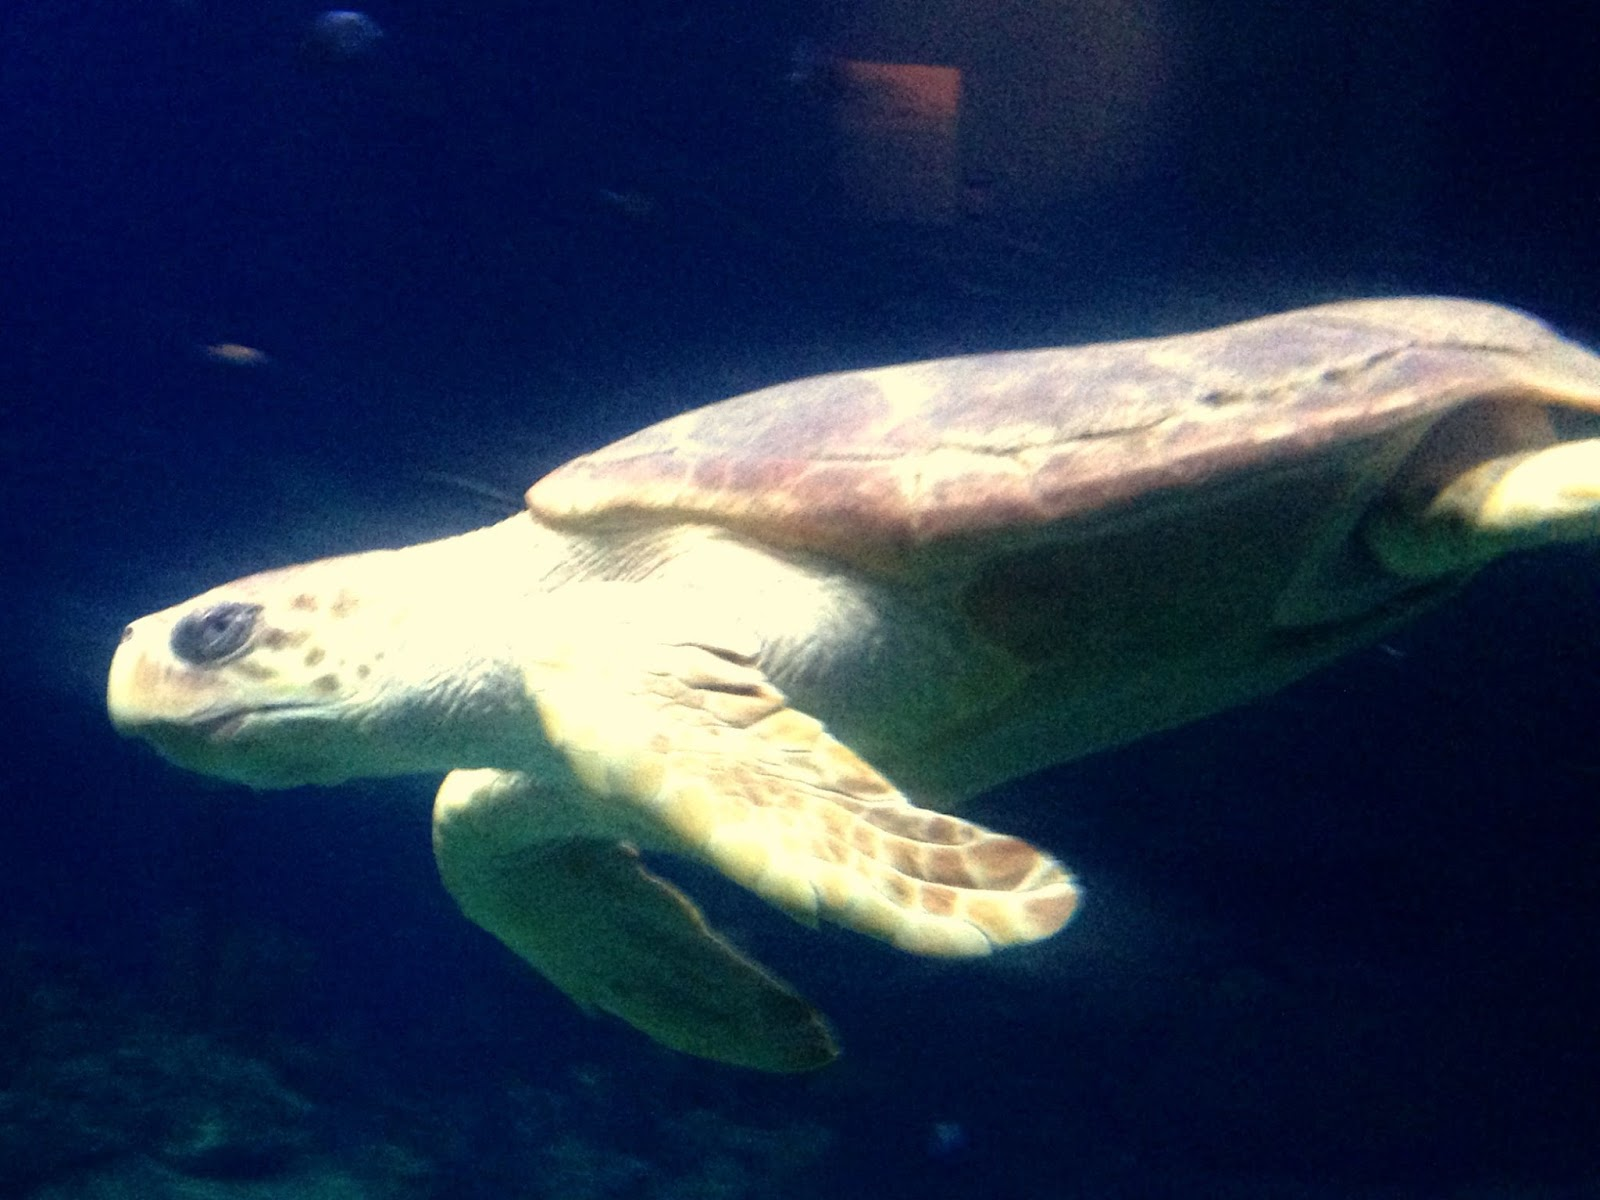 plymouth marine aquarium, turtle, sealife, blogger, parent blogger